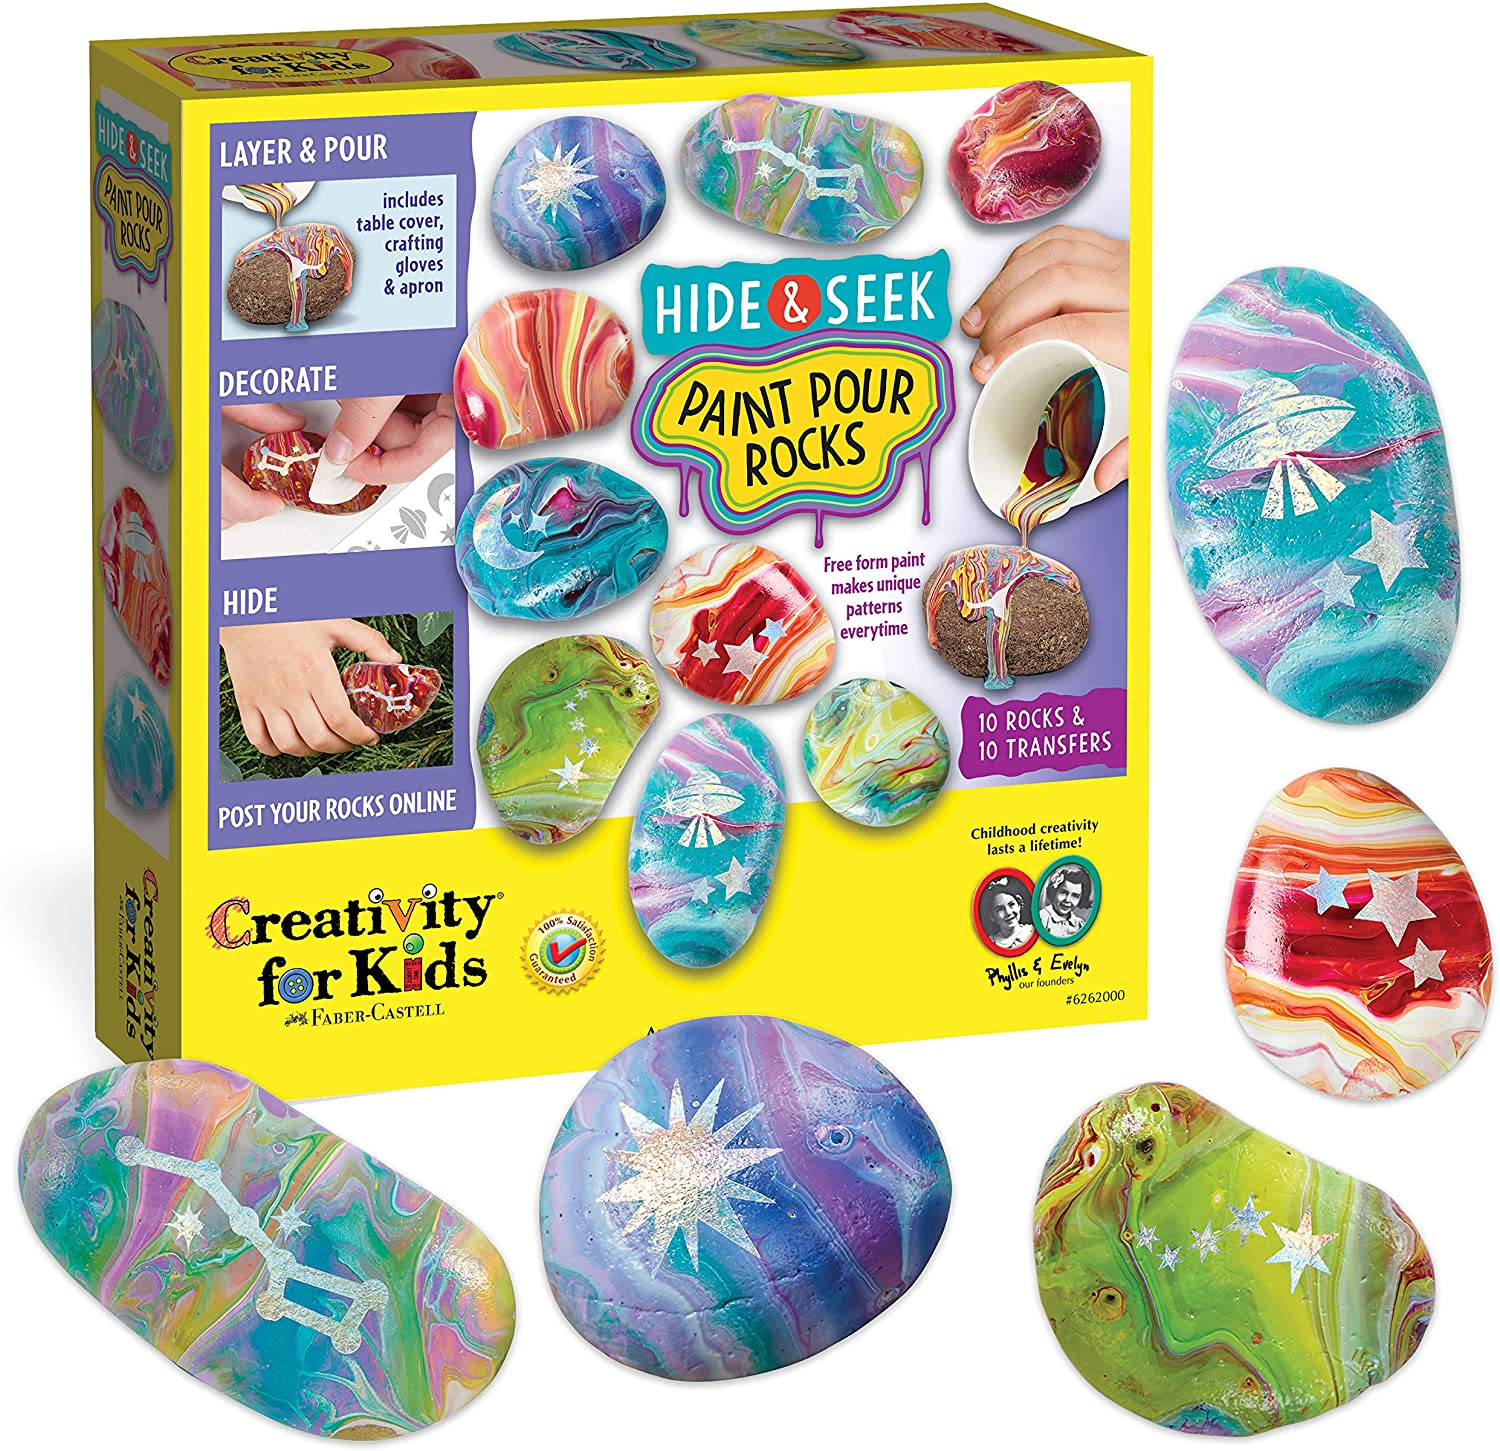 Hide & Seek Paint Pour Rocks - JKA Toys